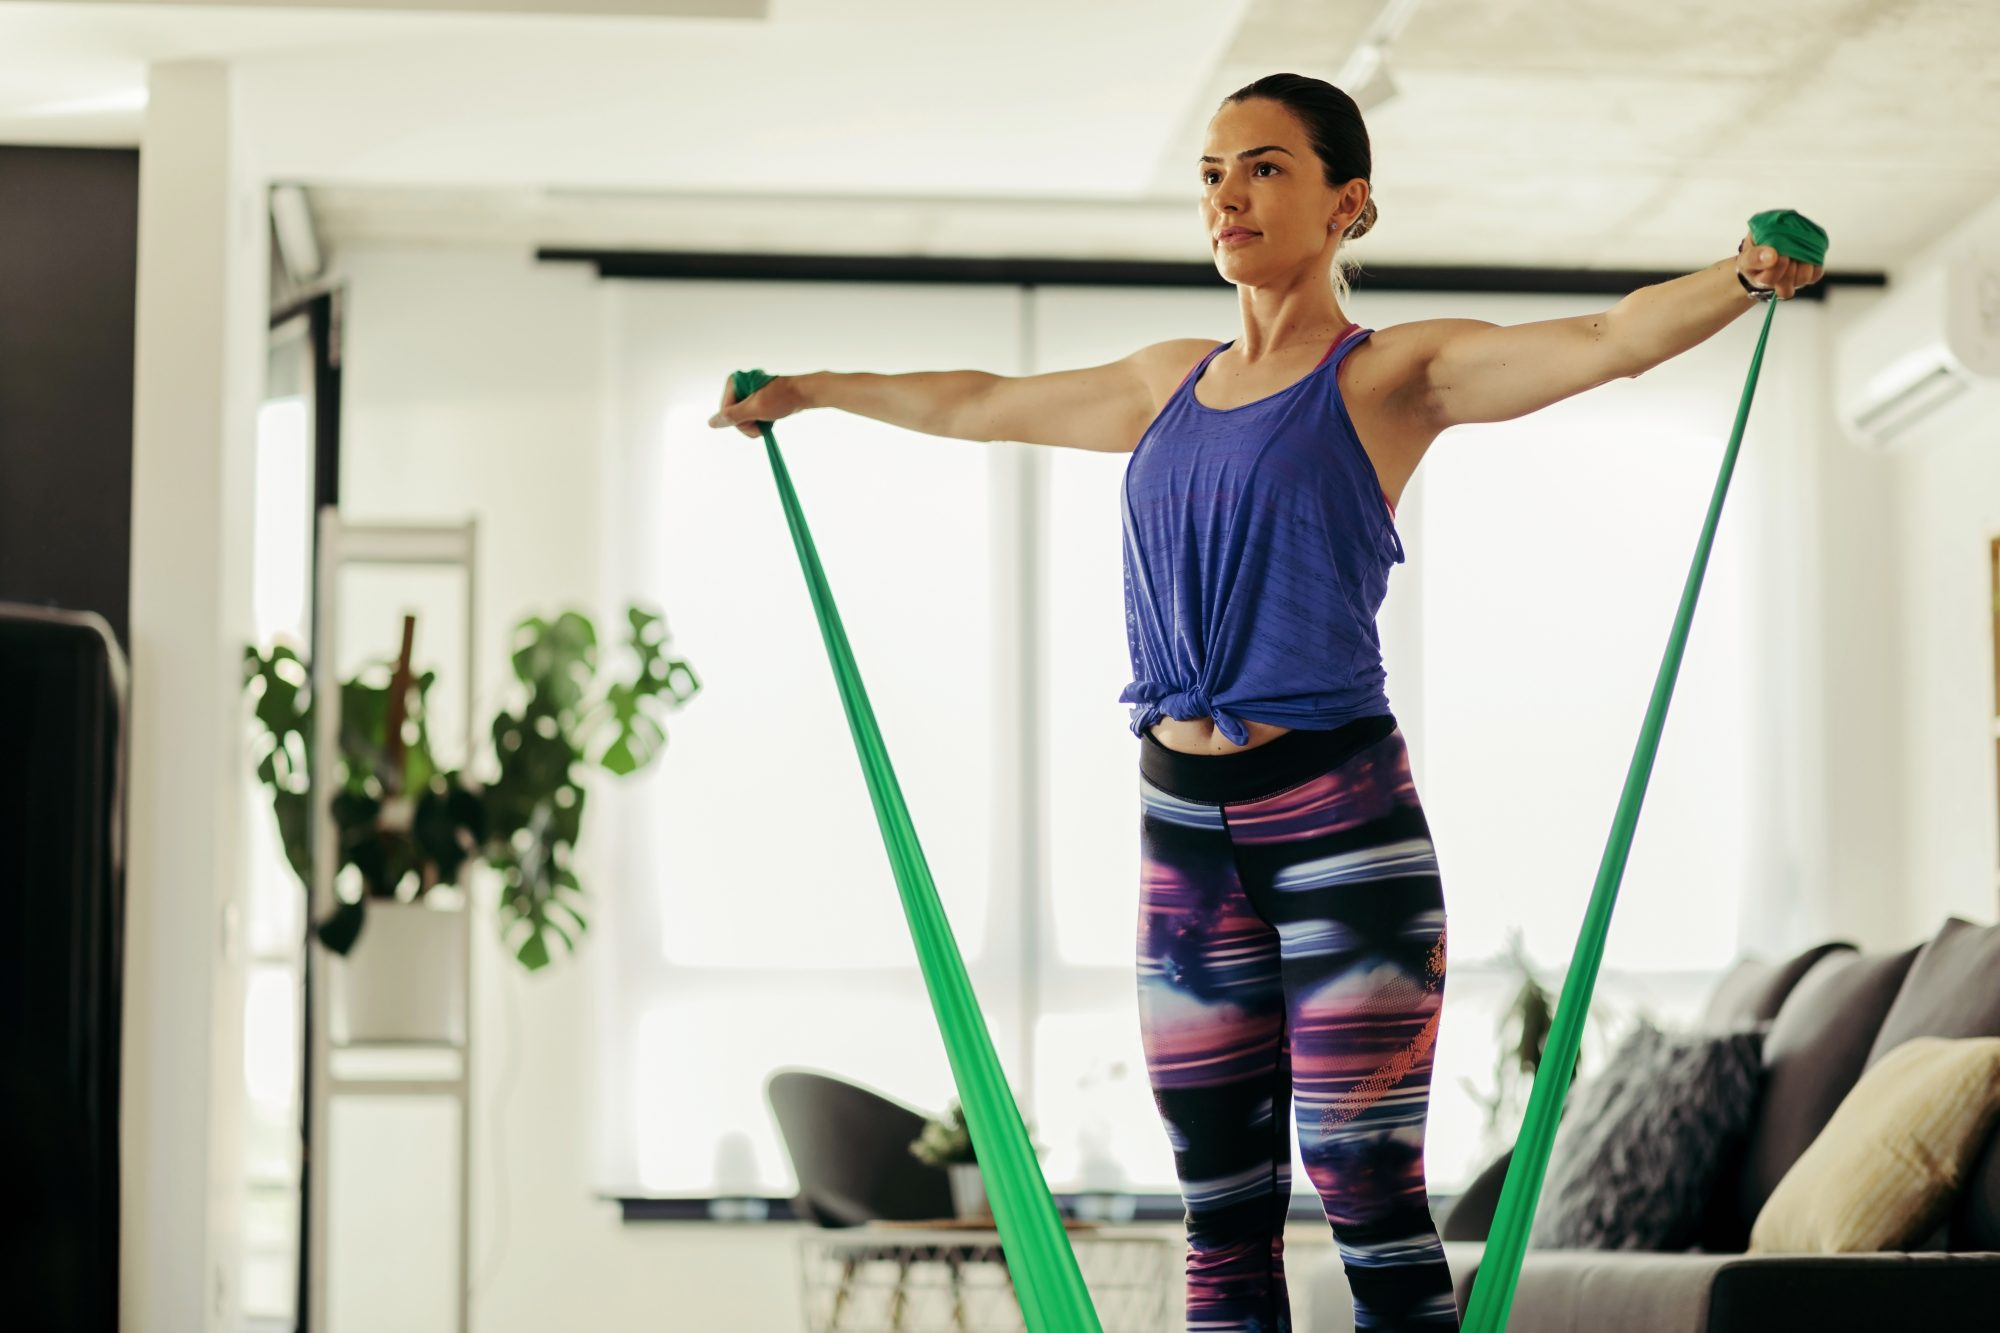 Resistance band workout: woman doing resistance band exercises